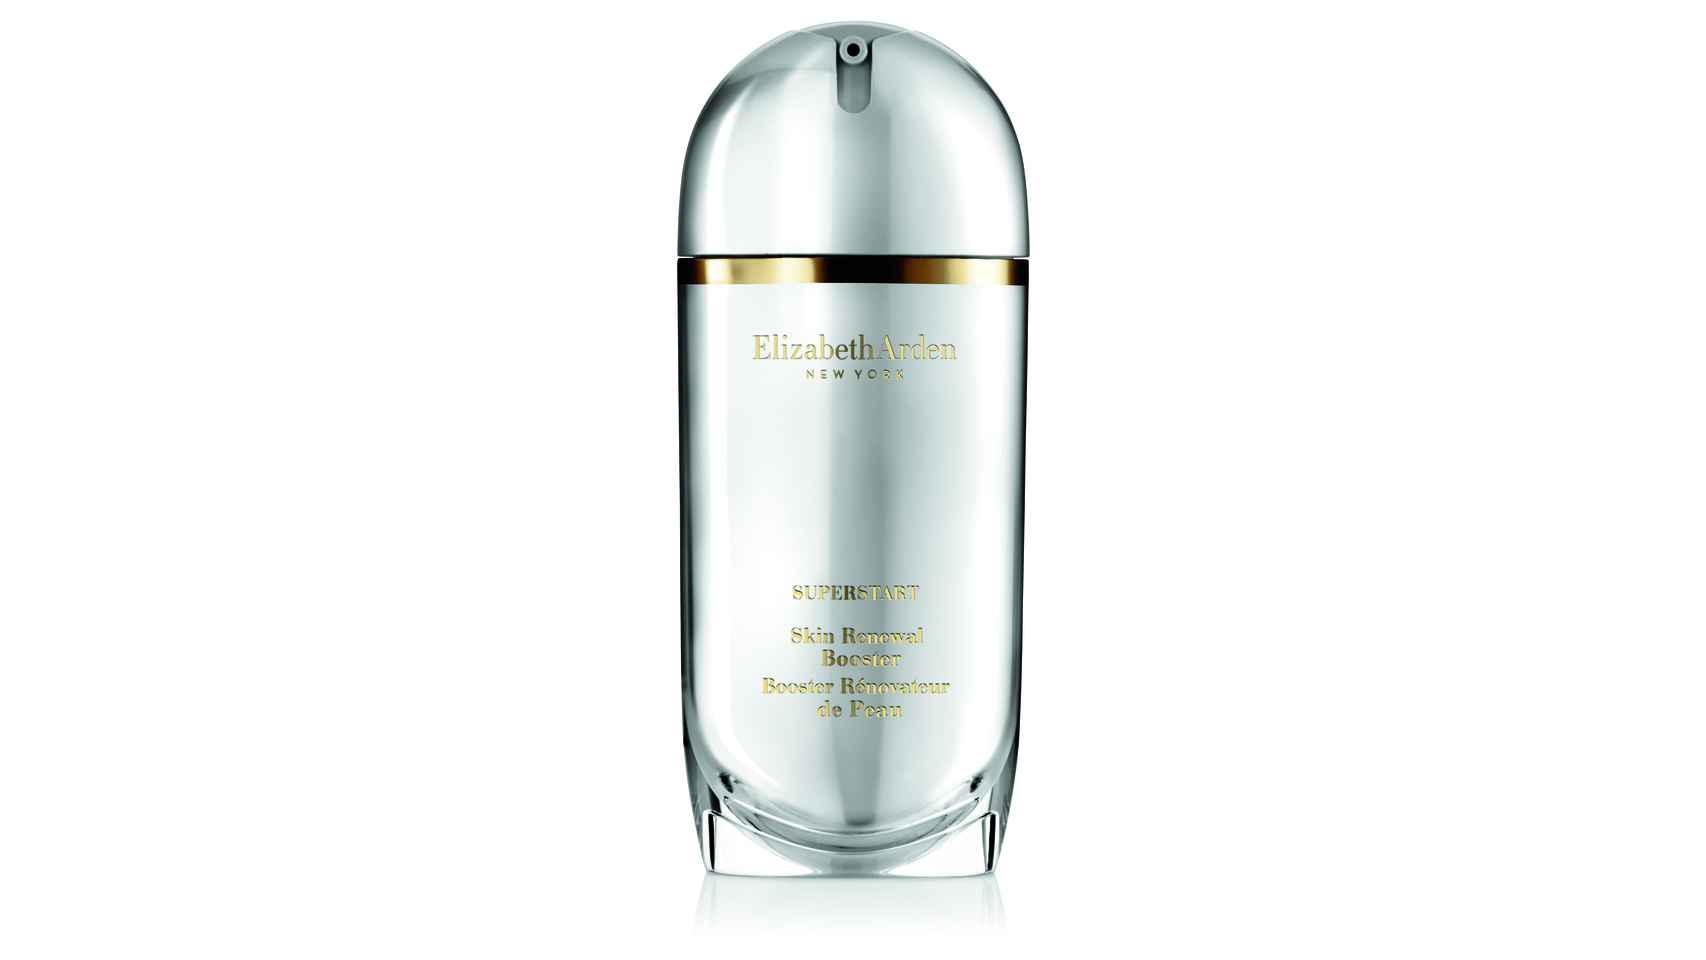 Superstart Skin Renewal Booster de Elizabeth Arden, 50ml.